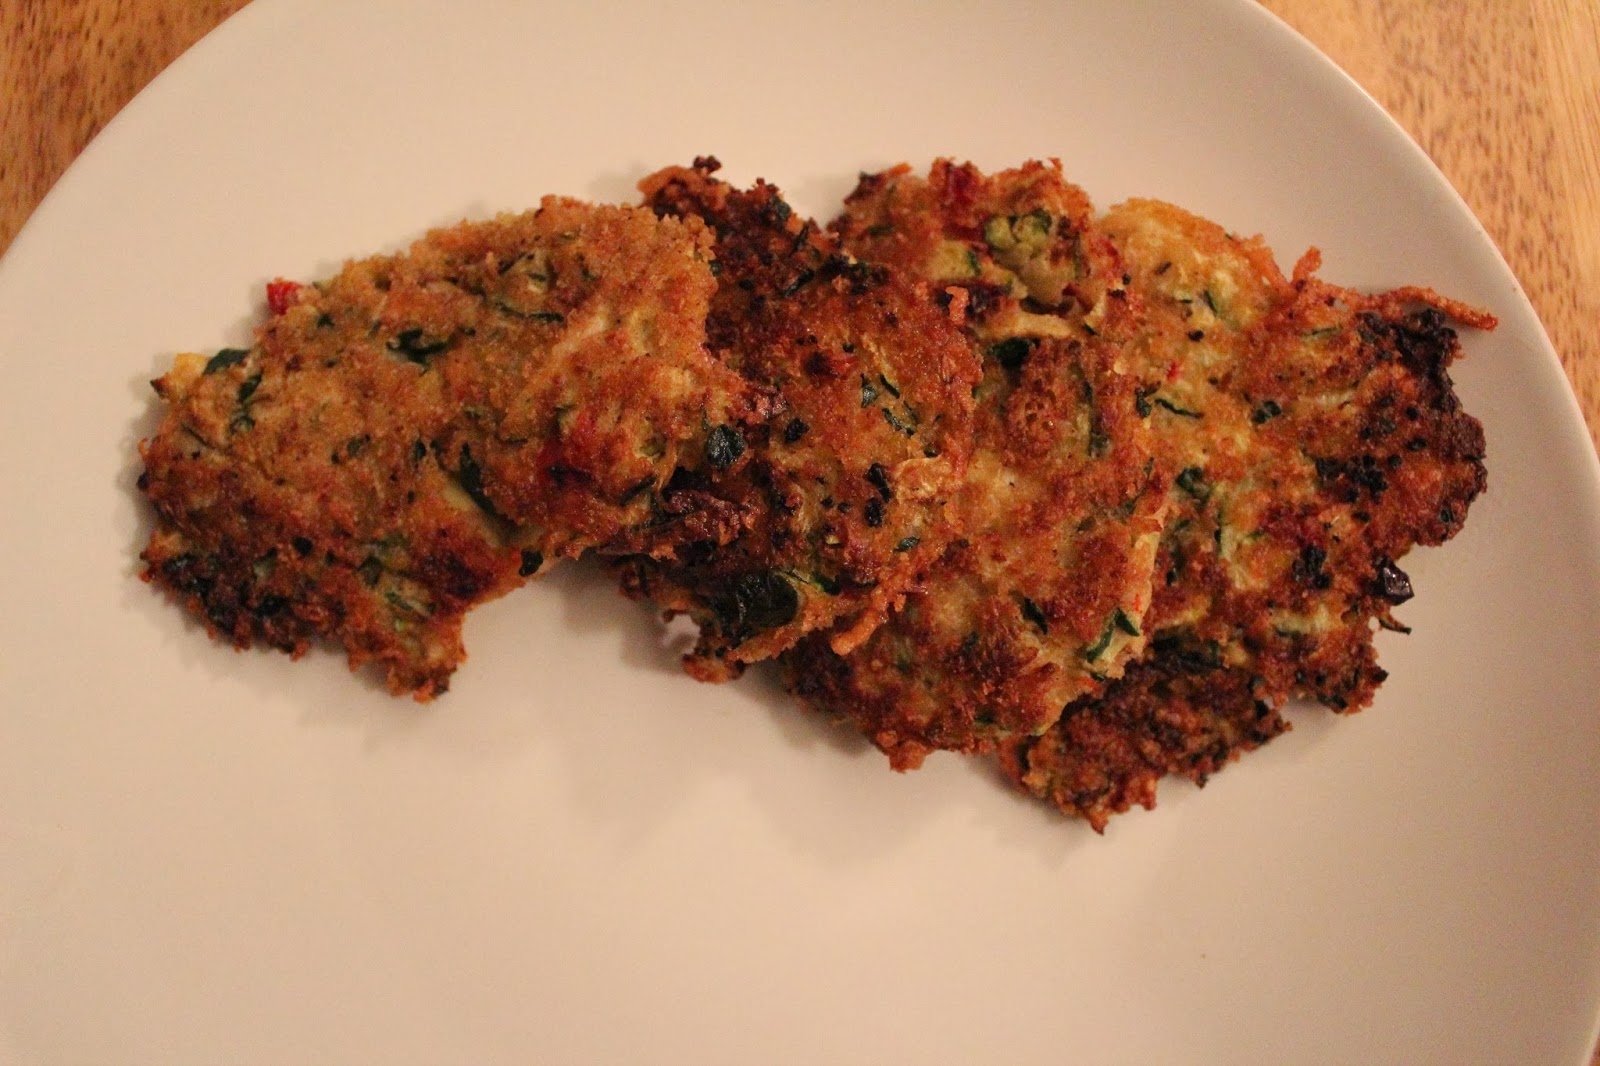 Runaway Apricot's Zucchini Patties with Sun-dried Tomatoes and Parmesan